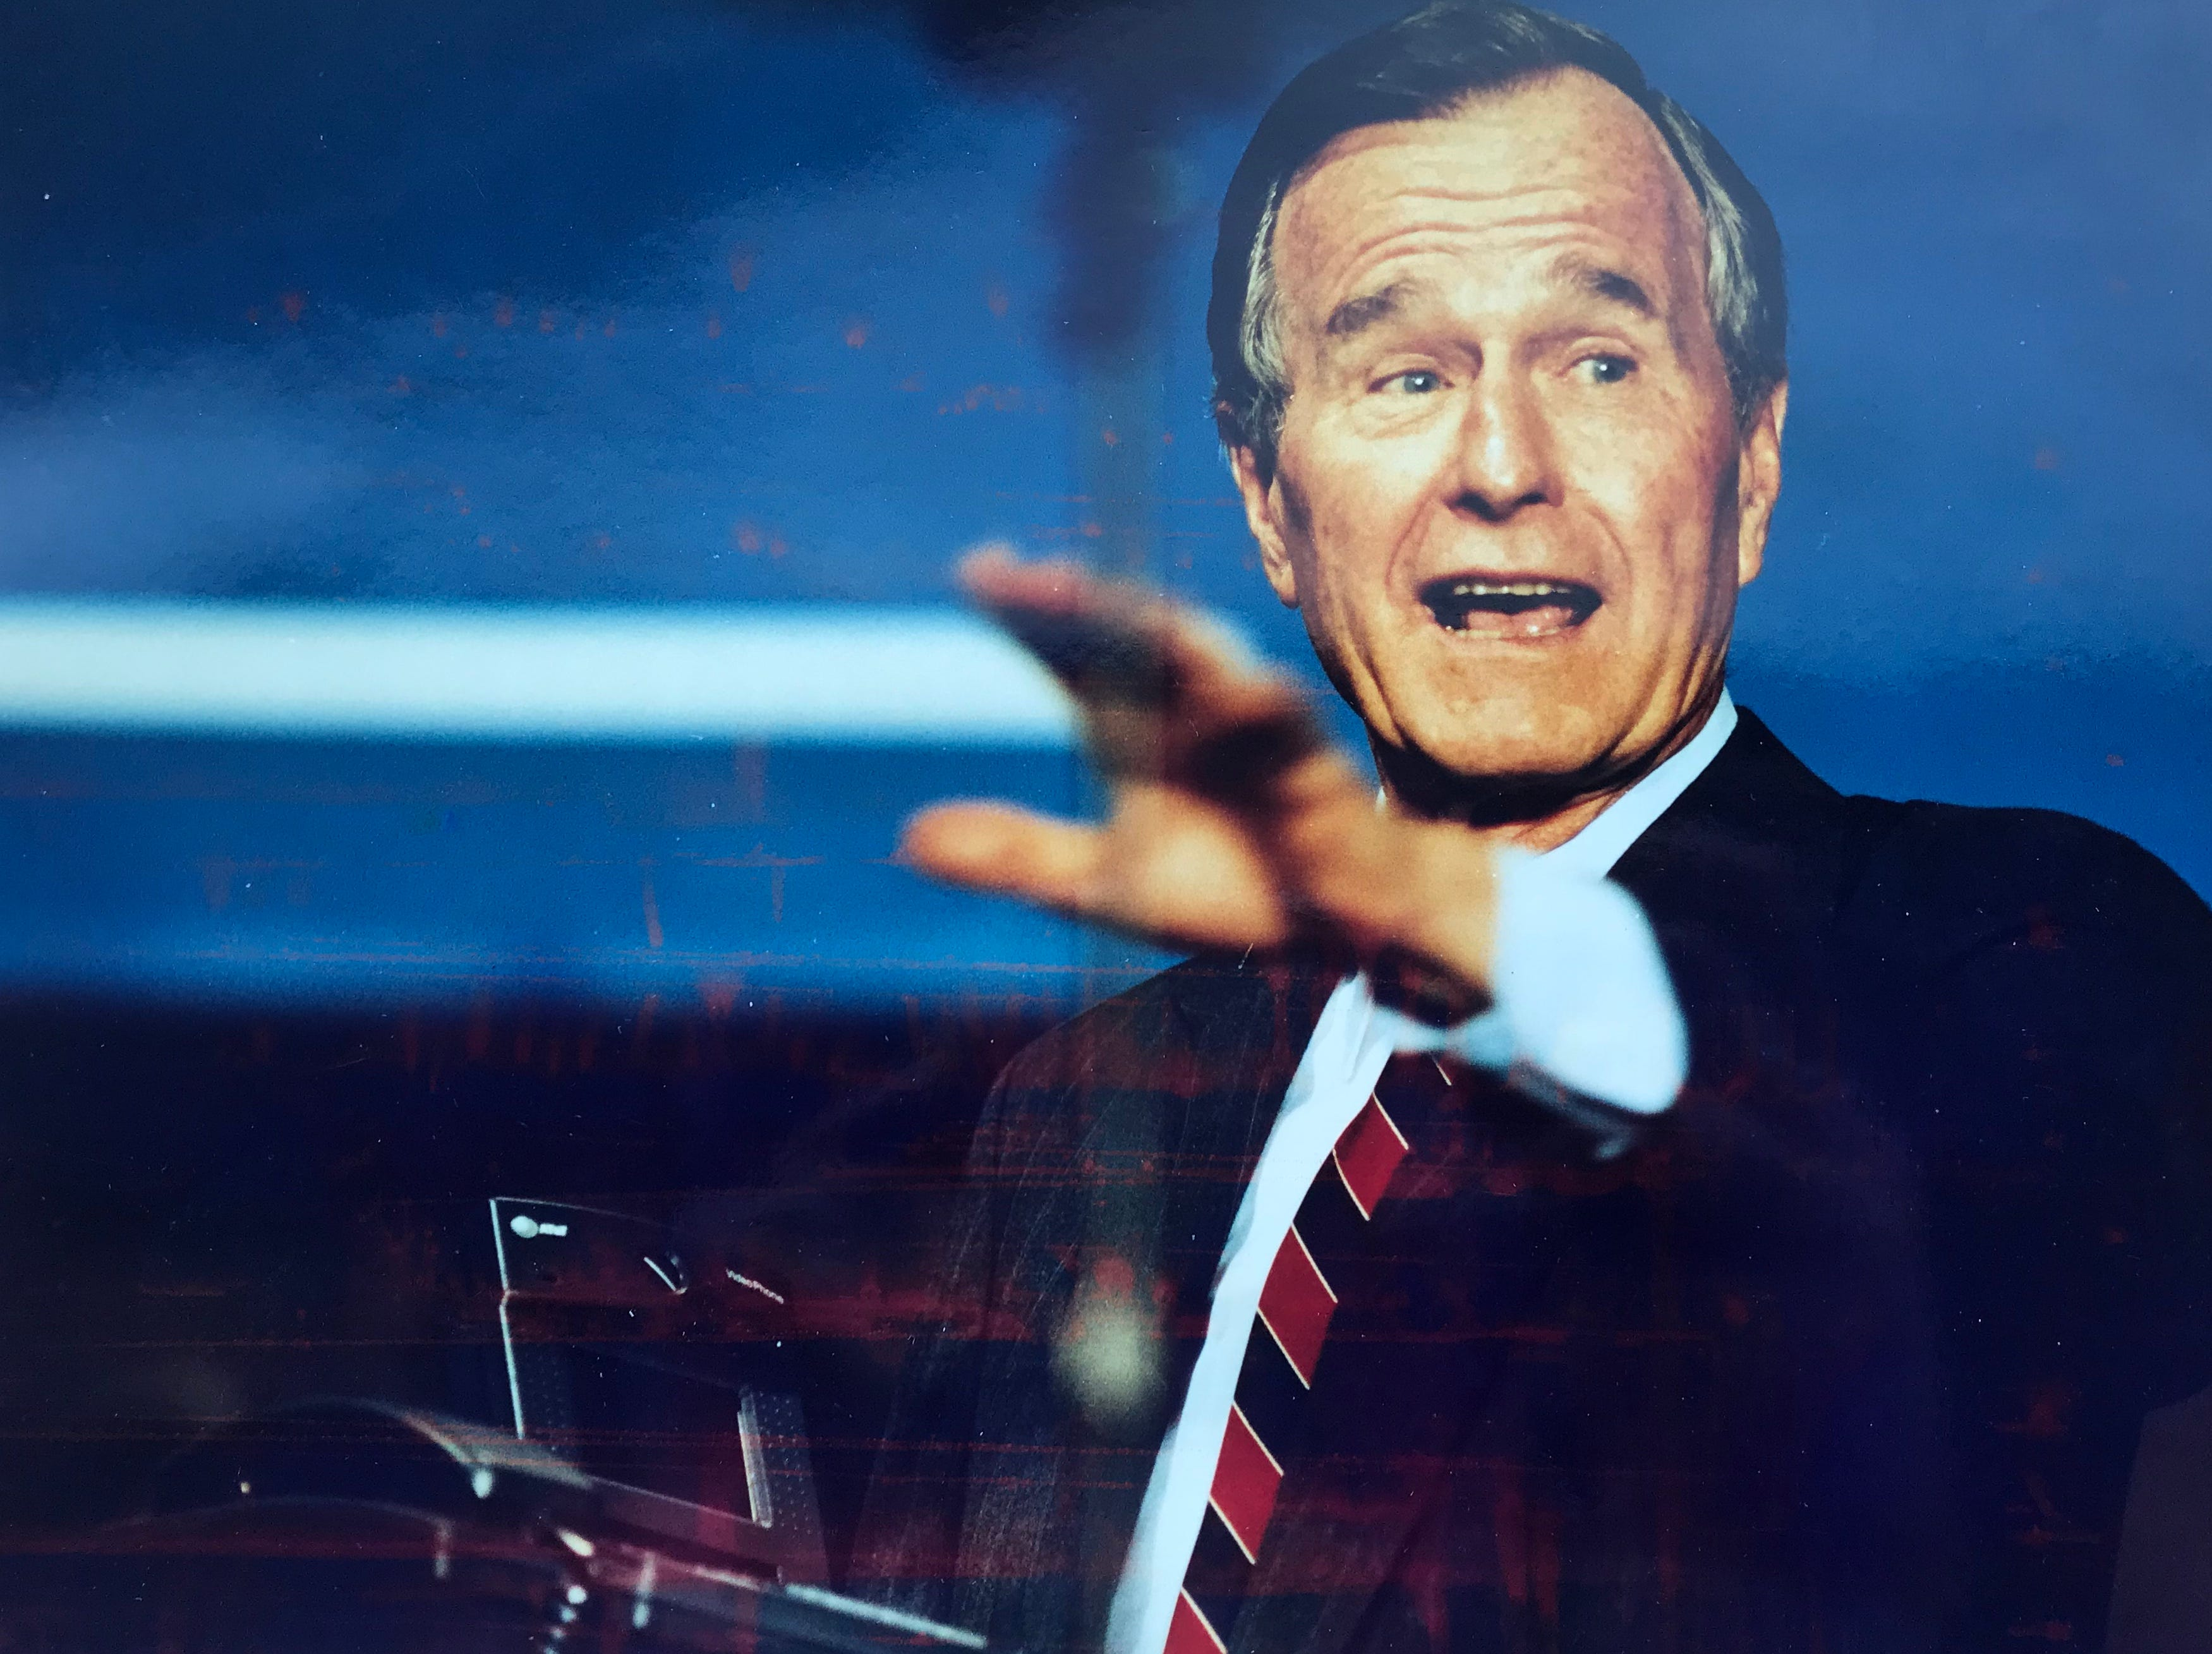 President George H.W. Bush waves to the crown at AT&T in Basking Ridge after receiving a new video phone.